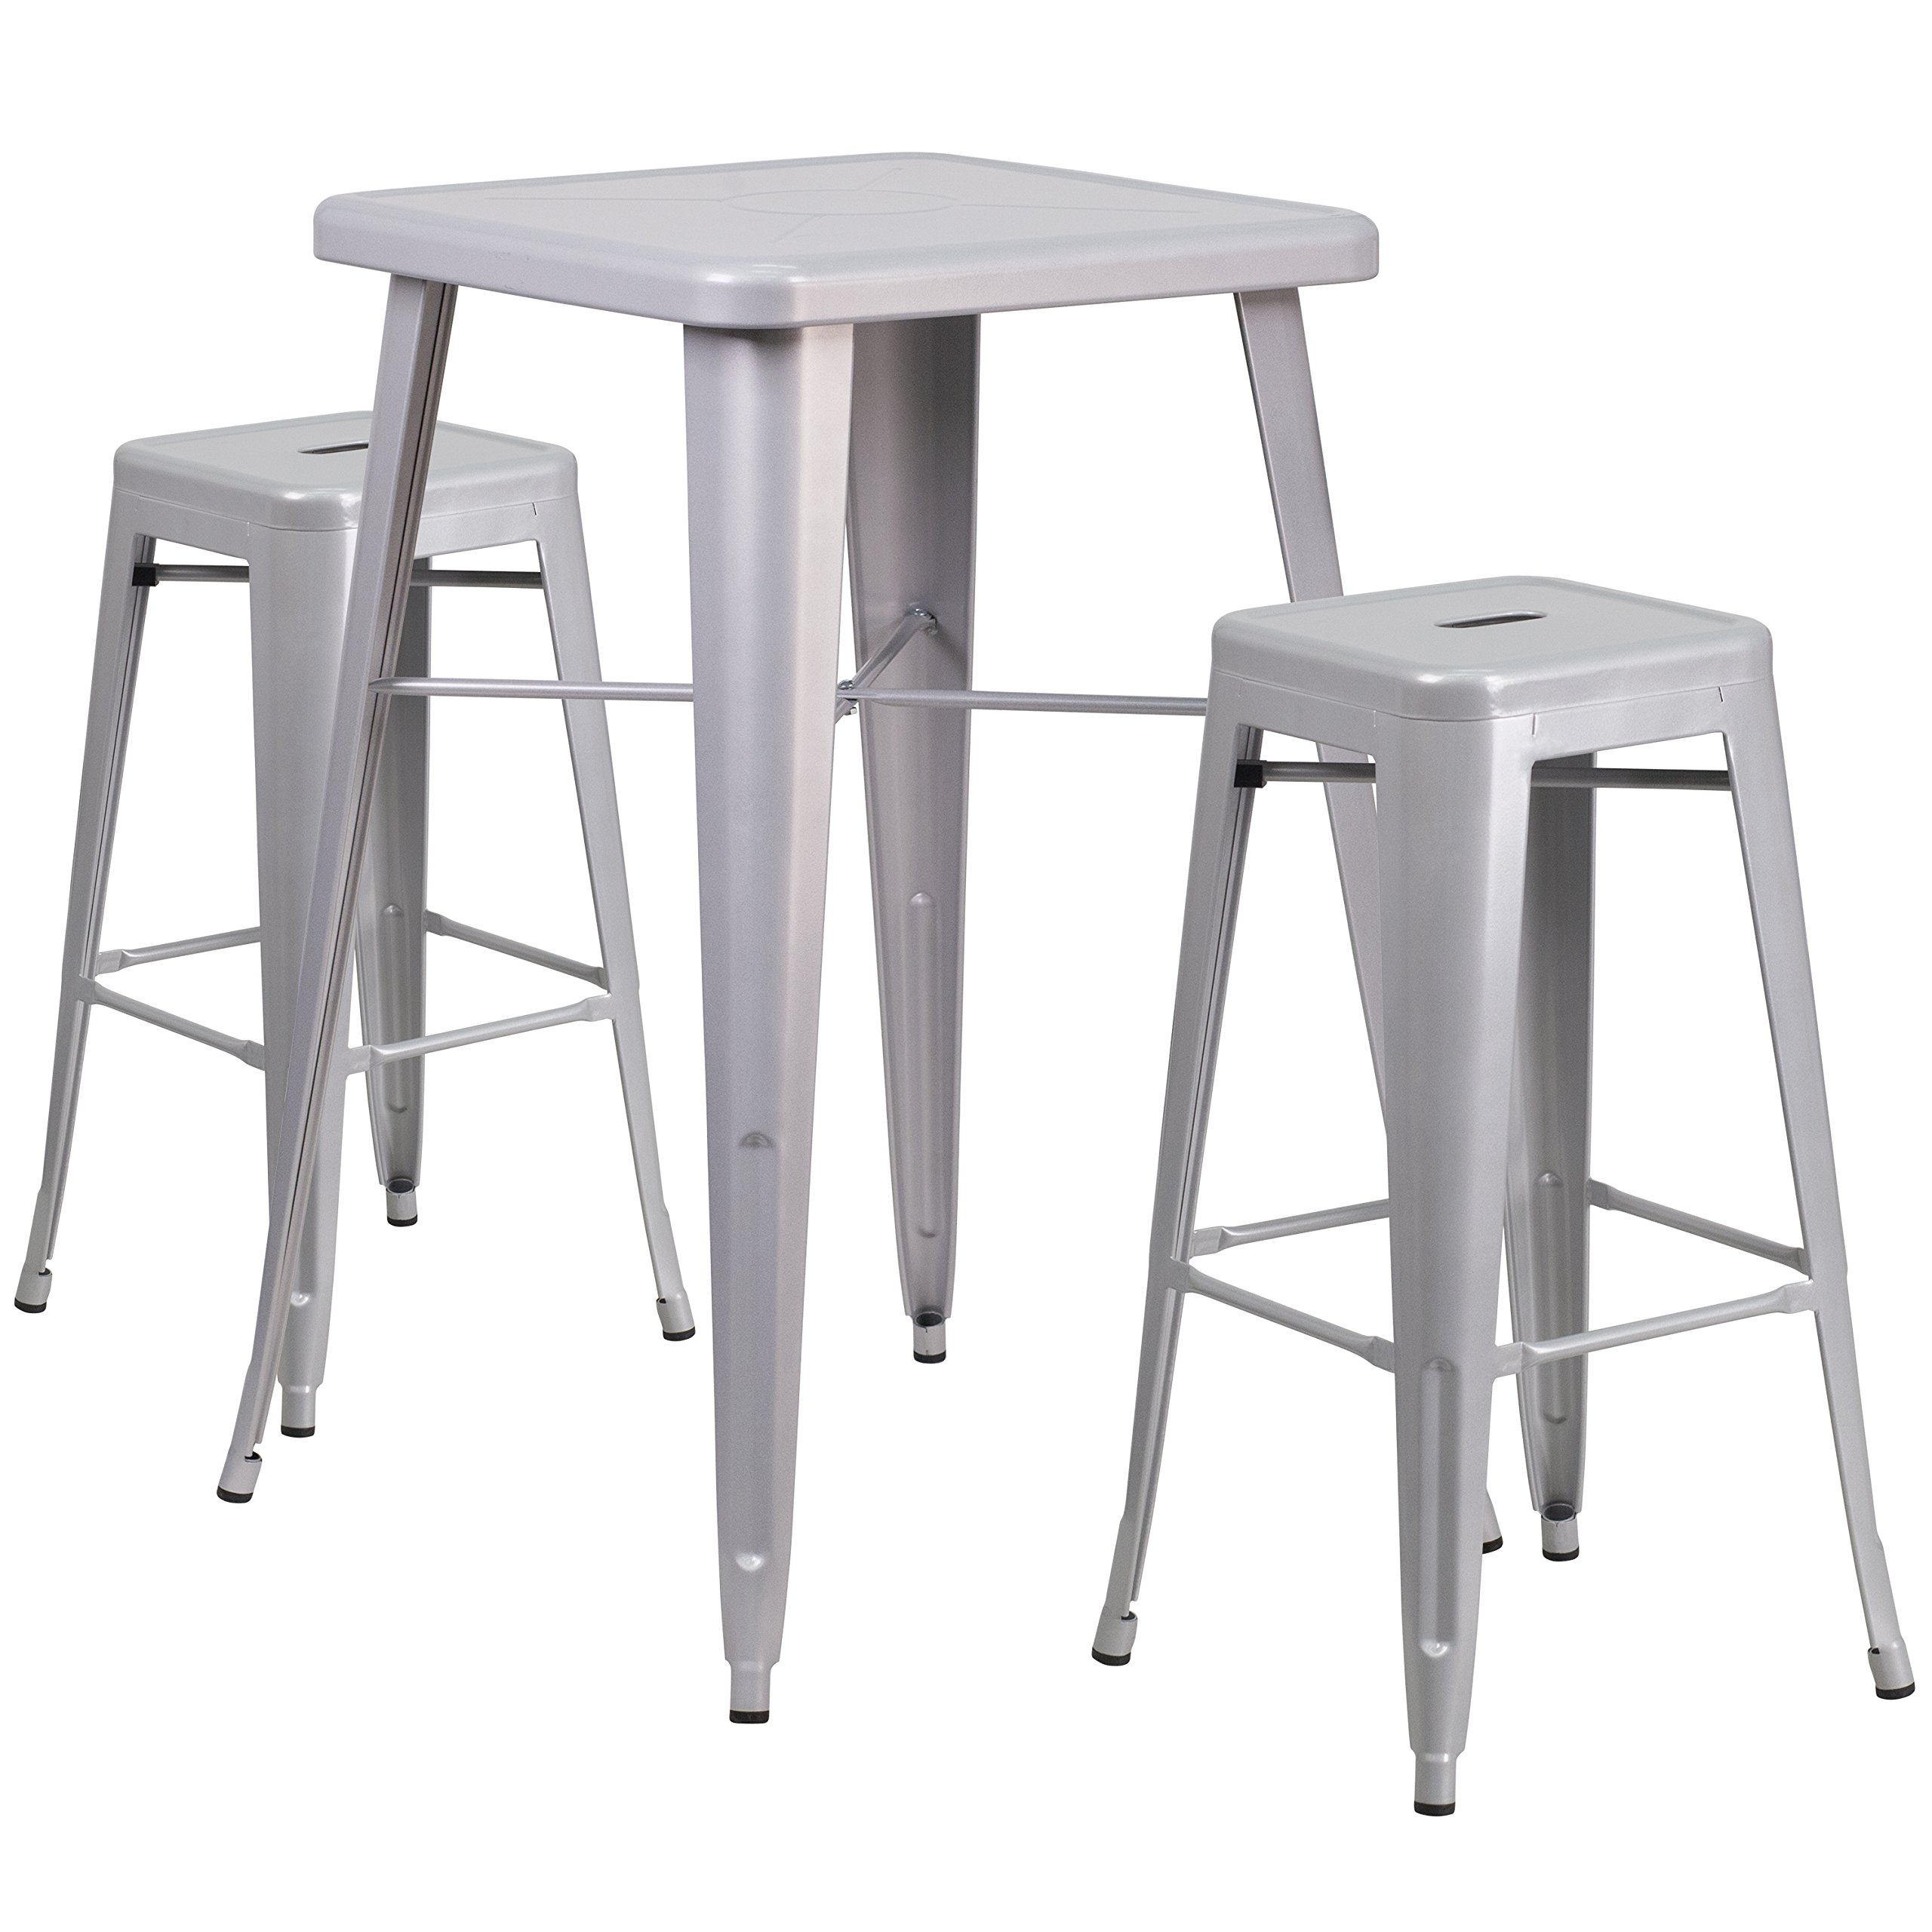 Flash Furniture 23.75'' Square Silver Metal Indoor-Outdoor Bar Table Set with 2 Square Seat Backless Stools